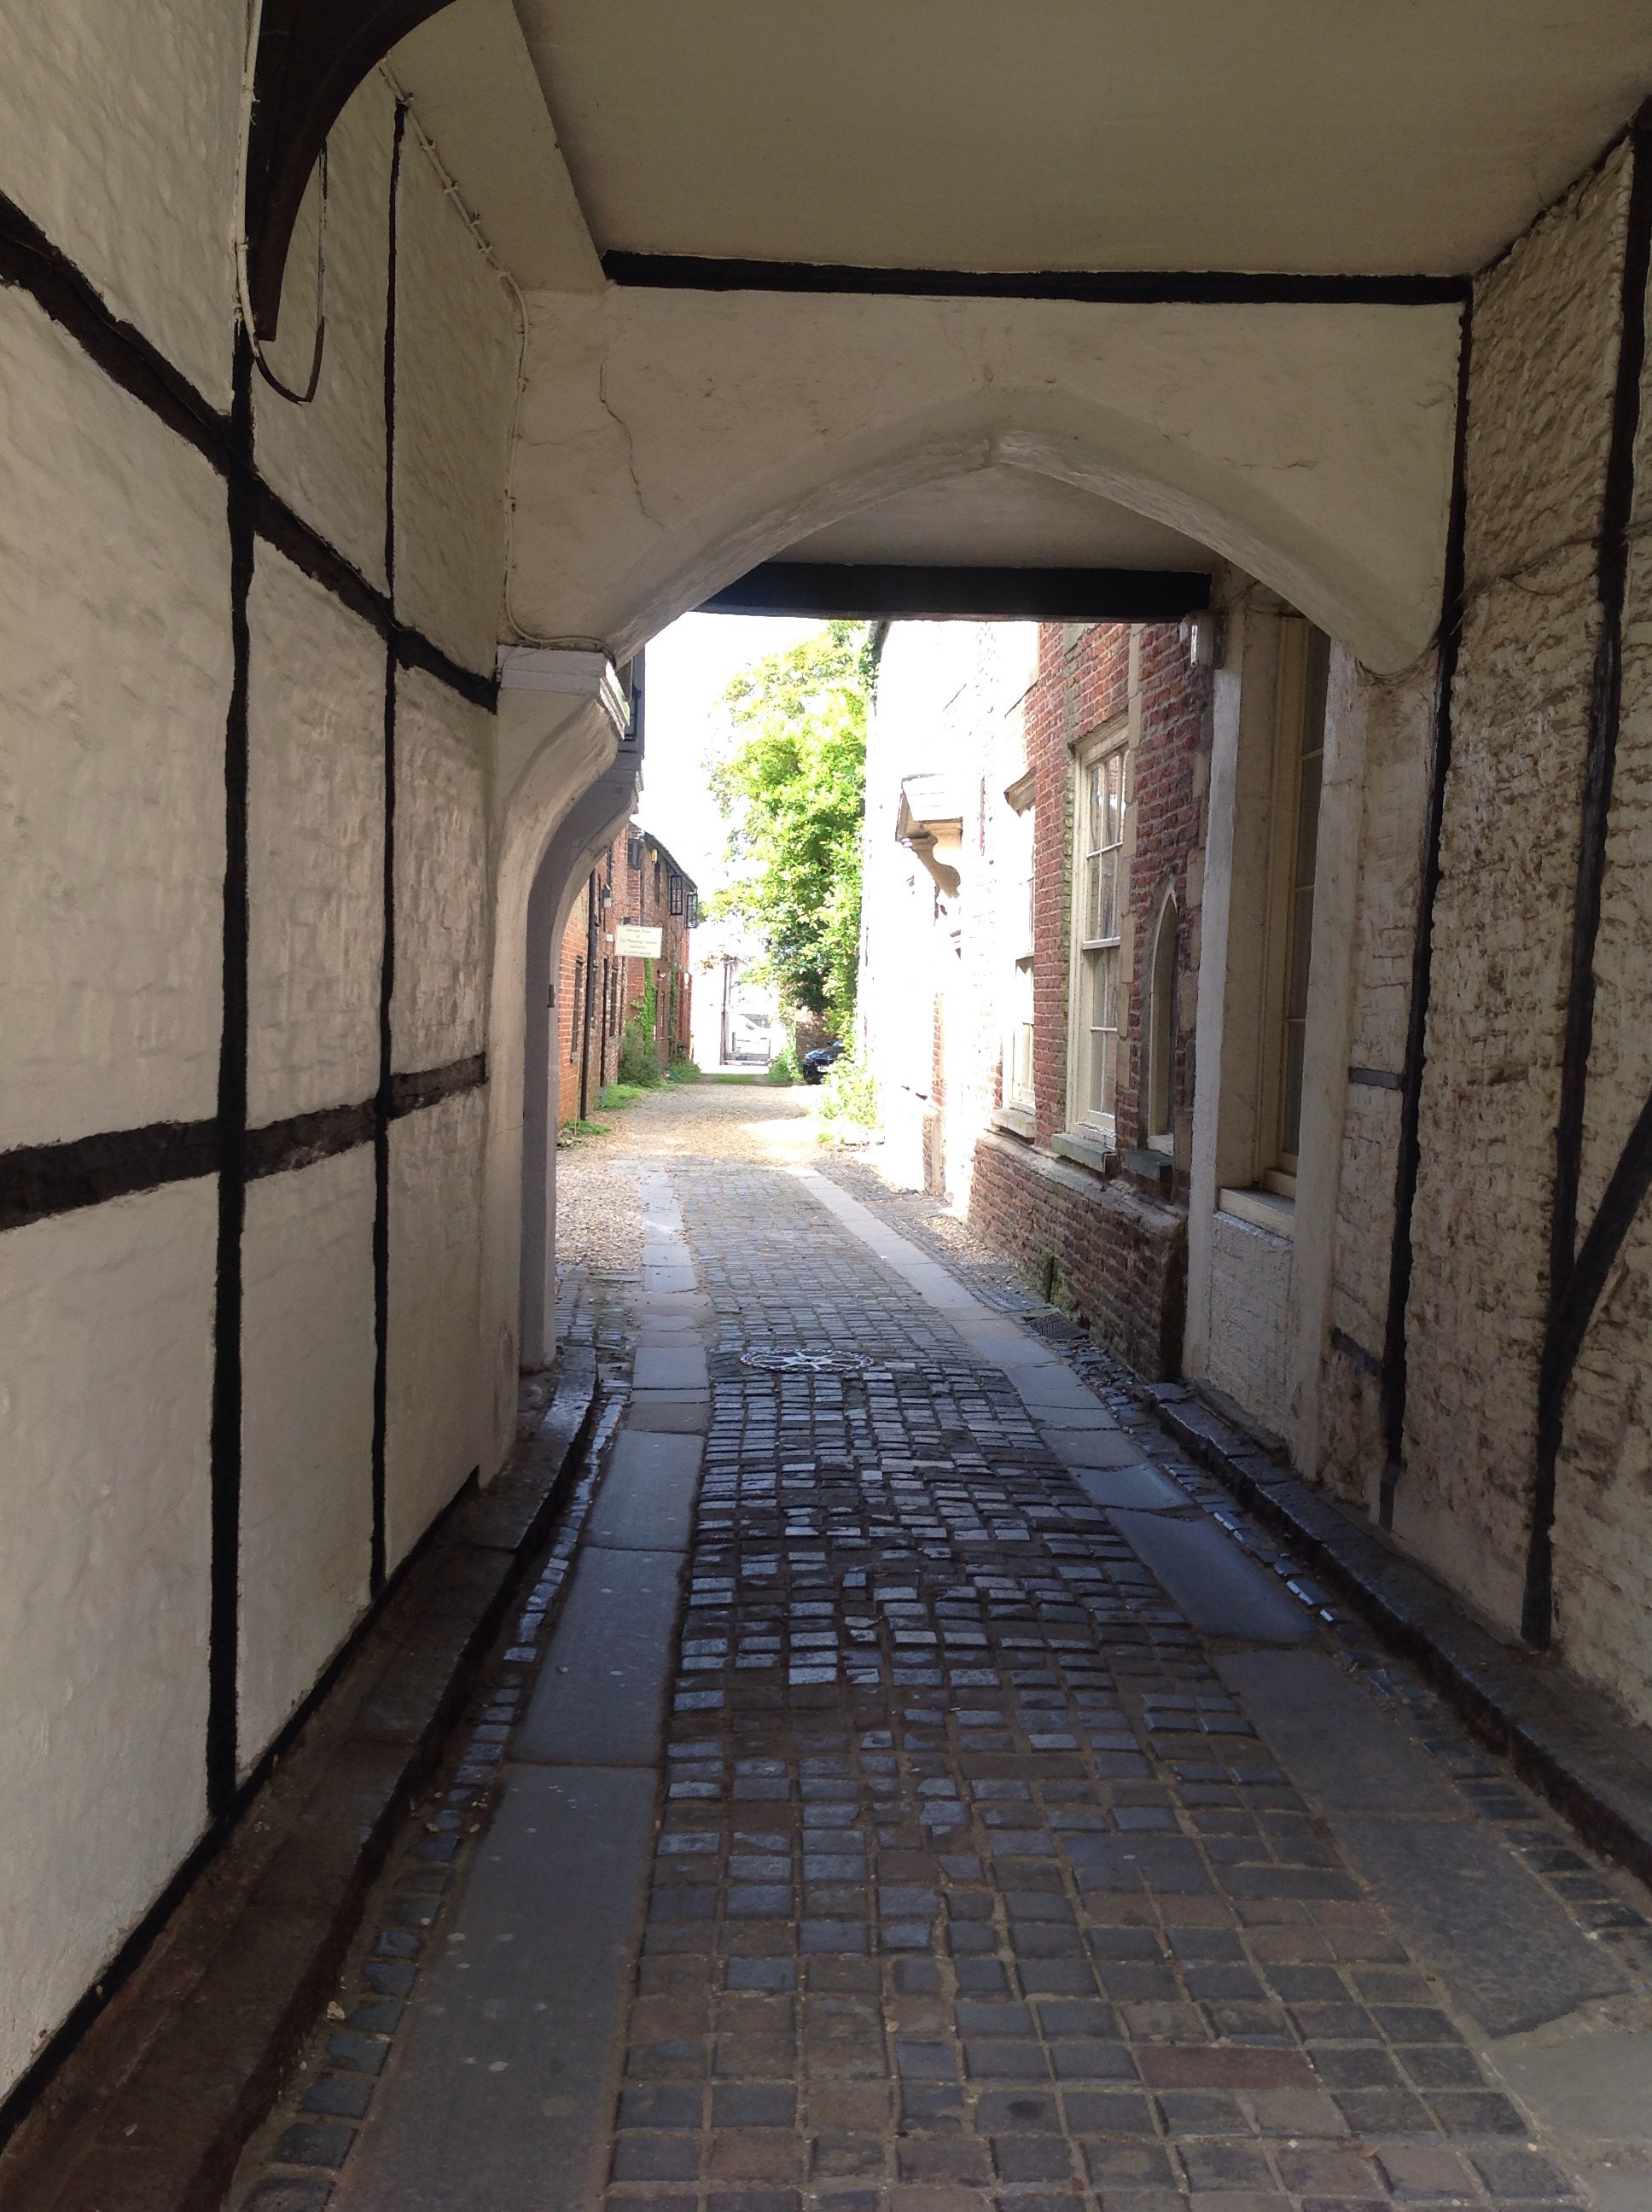 King's Lynn has many picturesque courtyards and alleyways especially between the houses leading to the quayside.